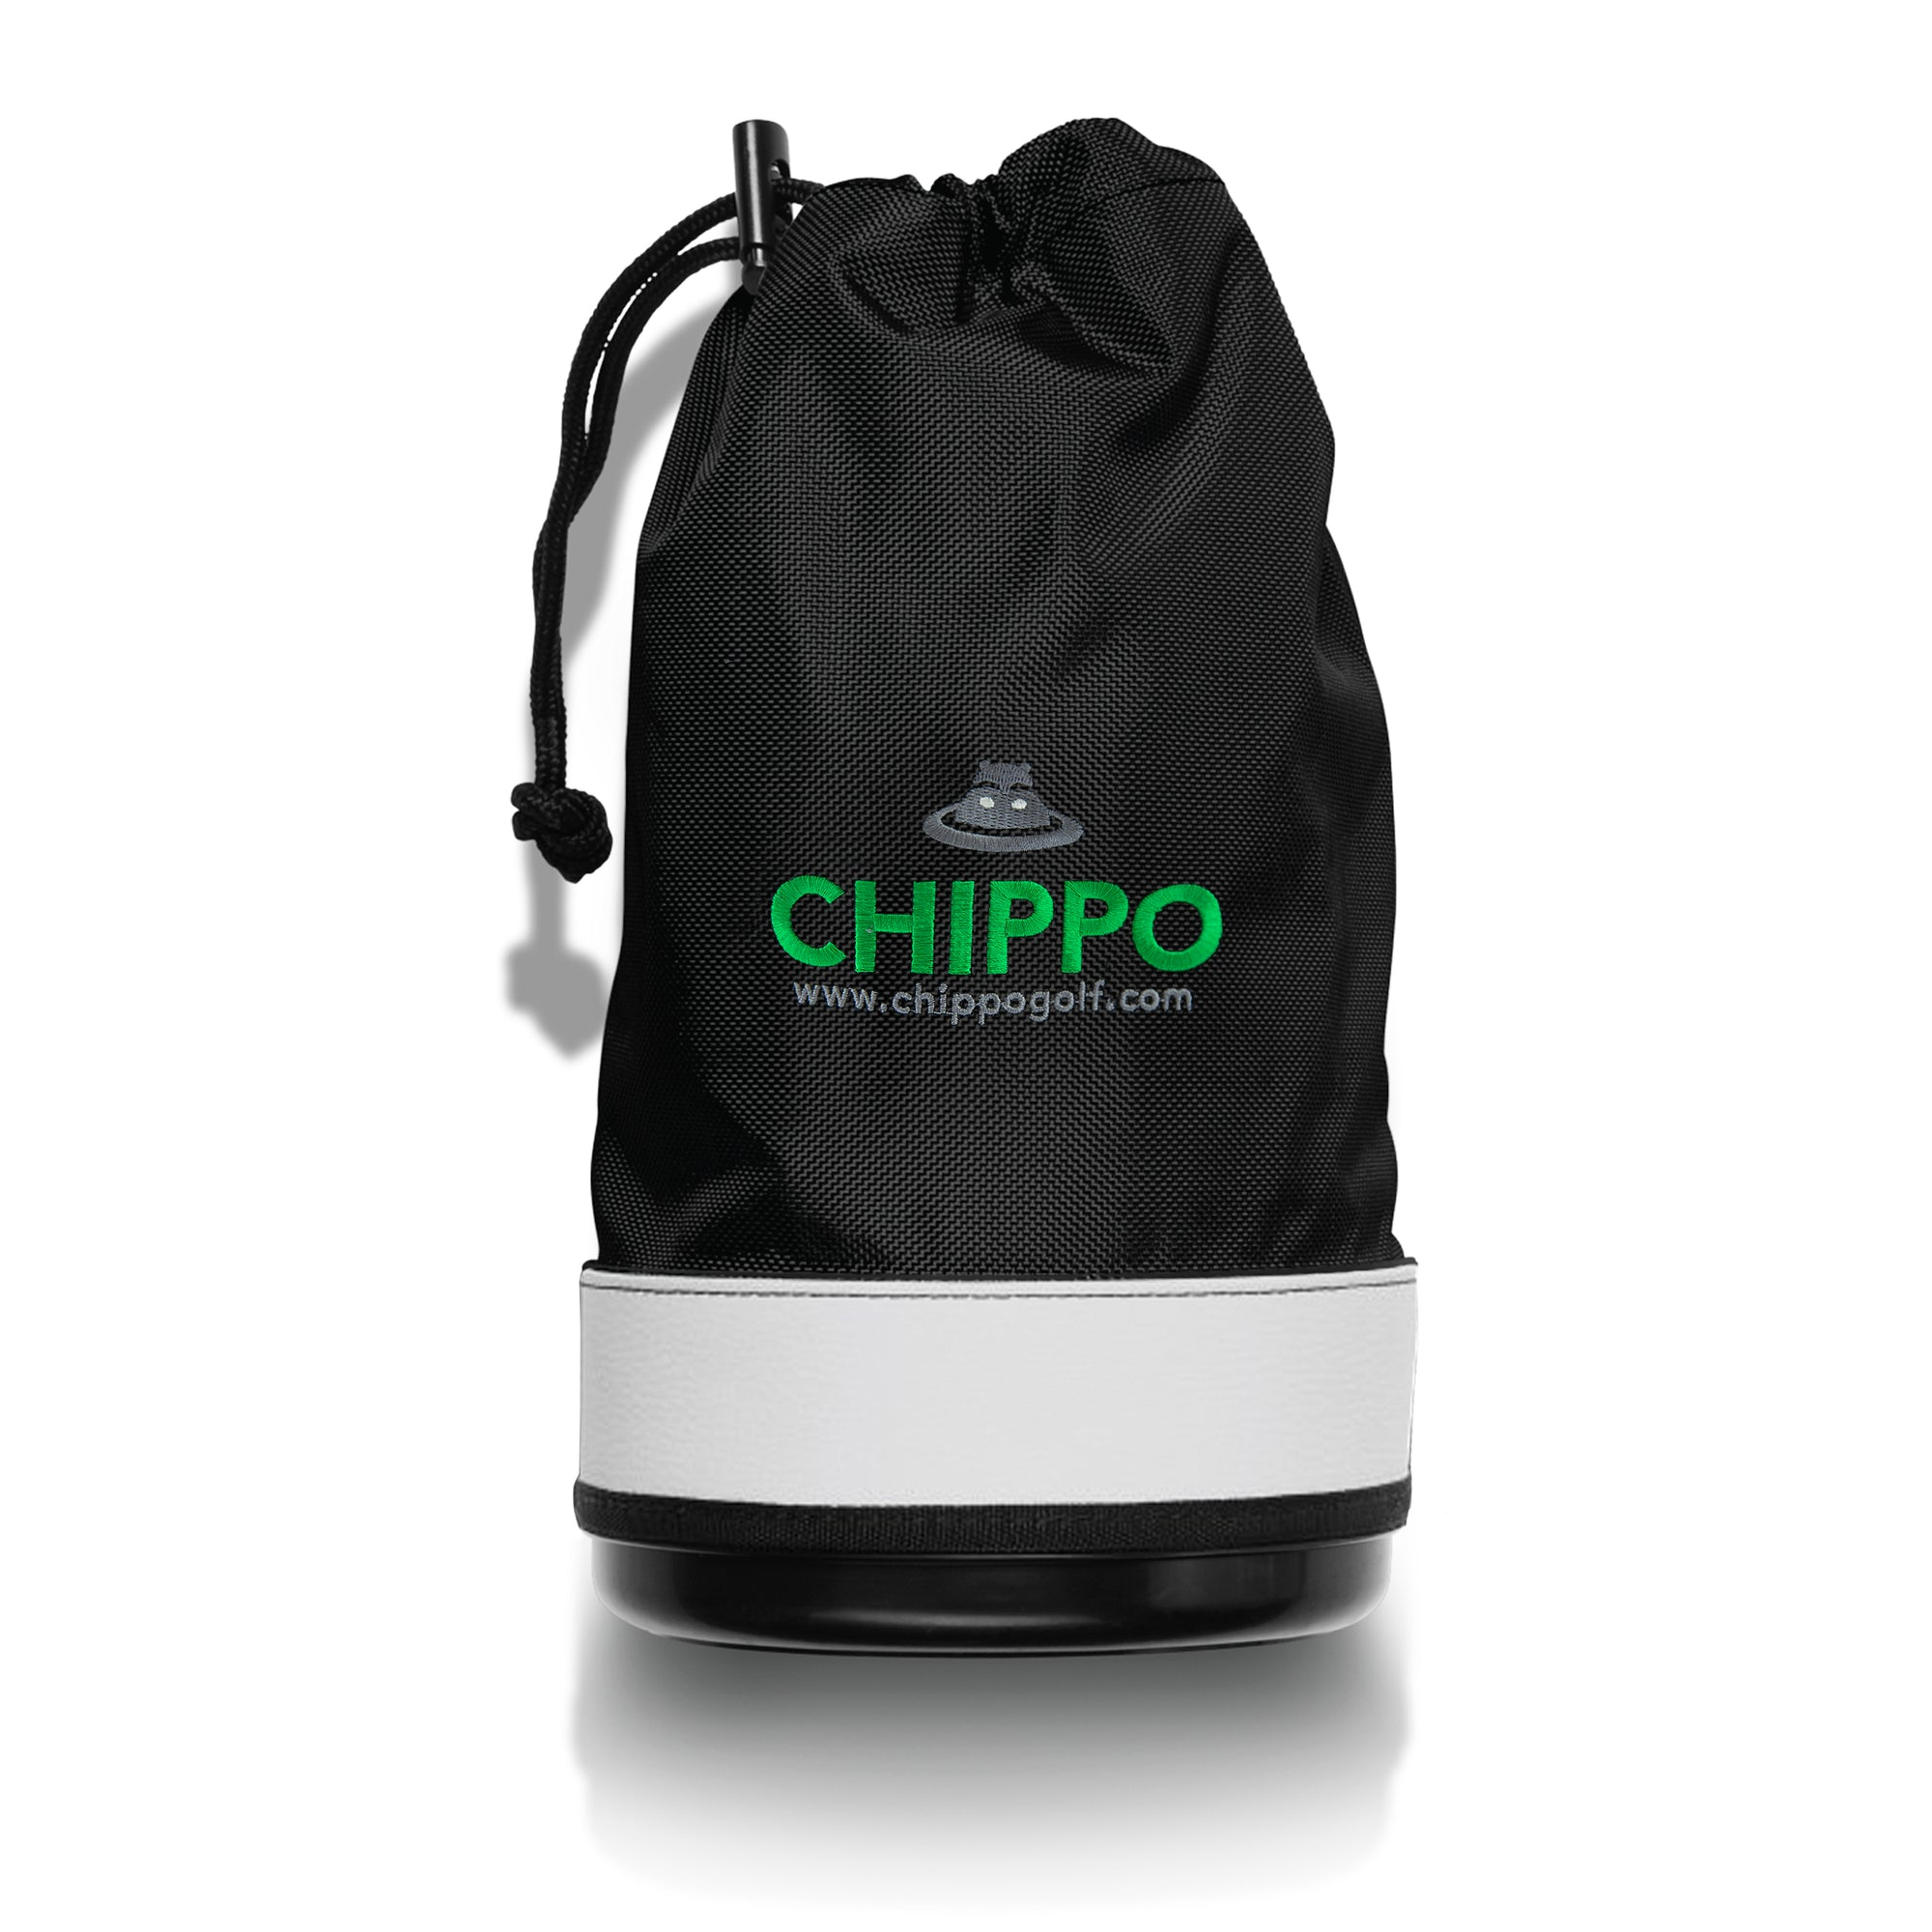 Chippo X Jones Ranger Bag & Cooler